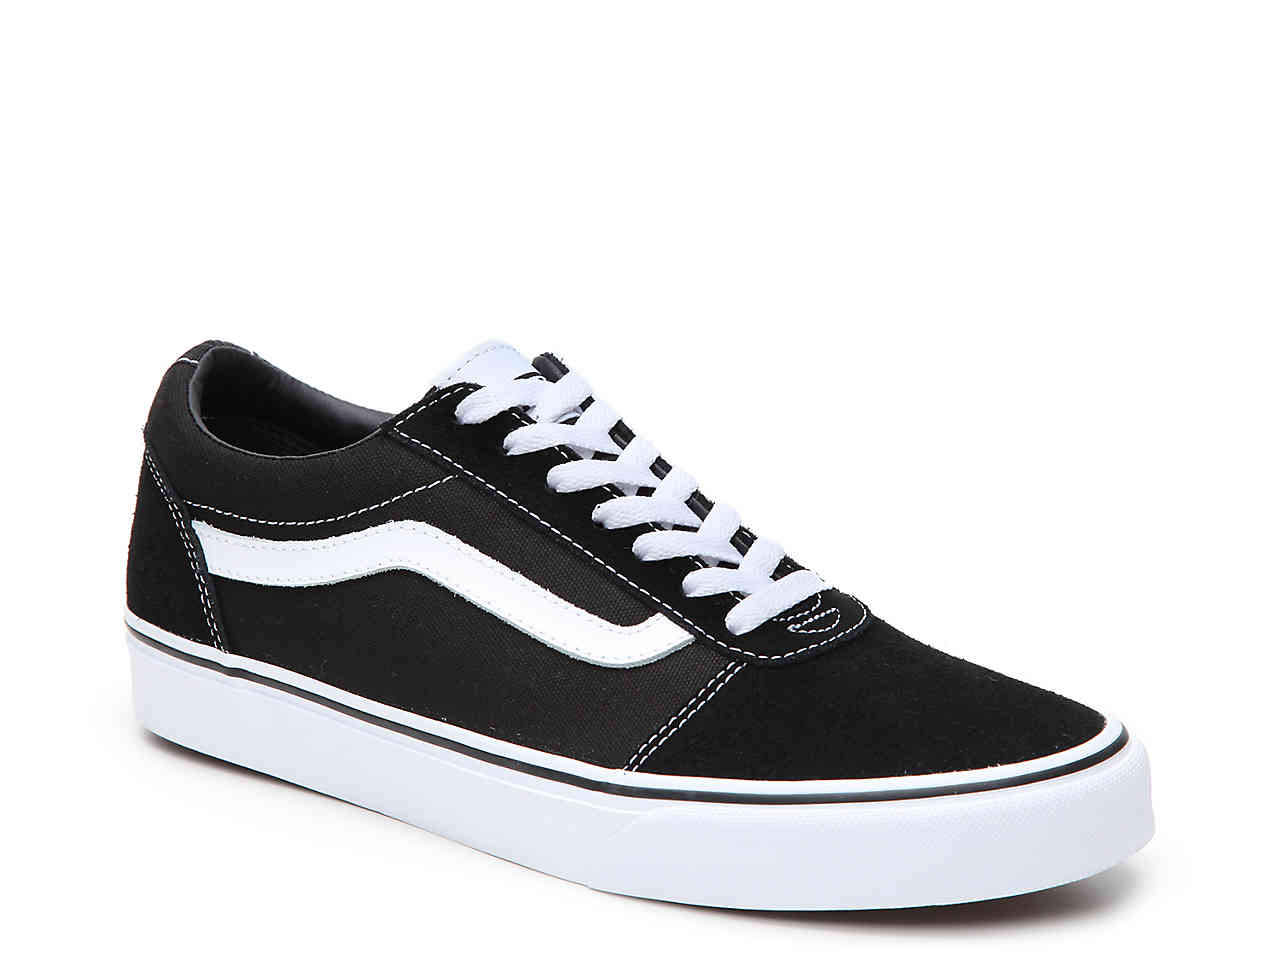 Vans sneakers are the best shoes for